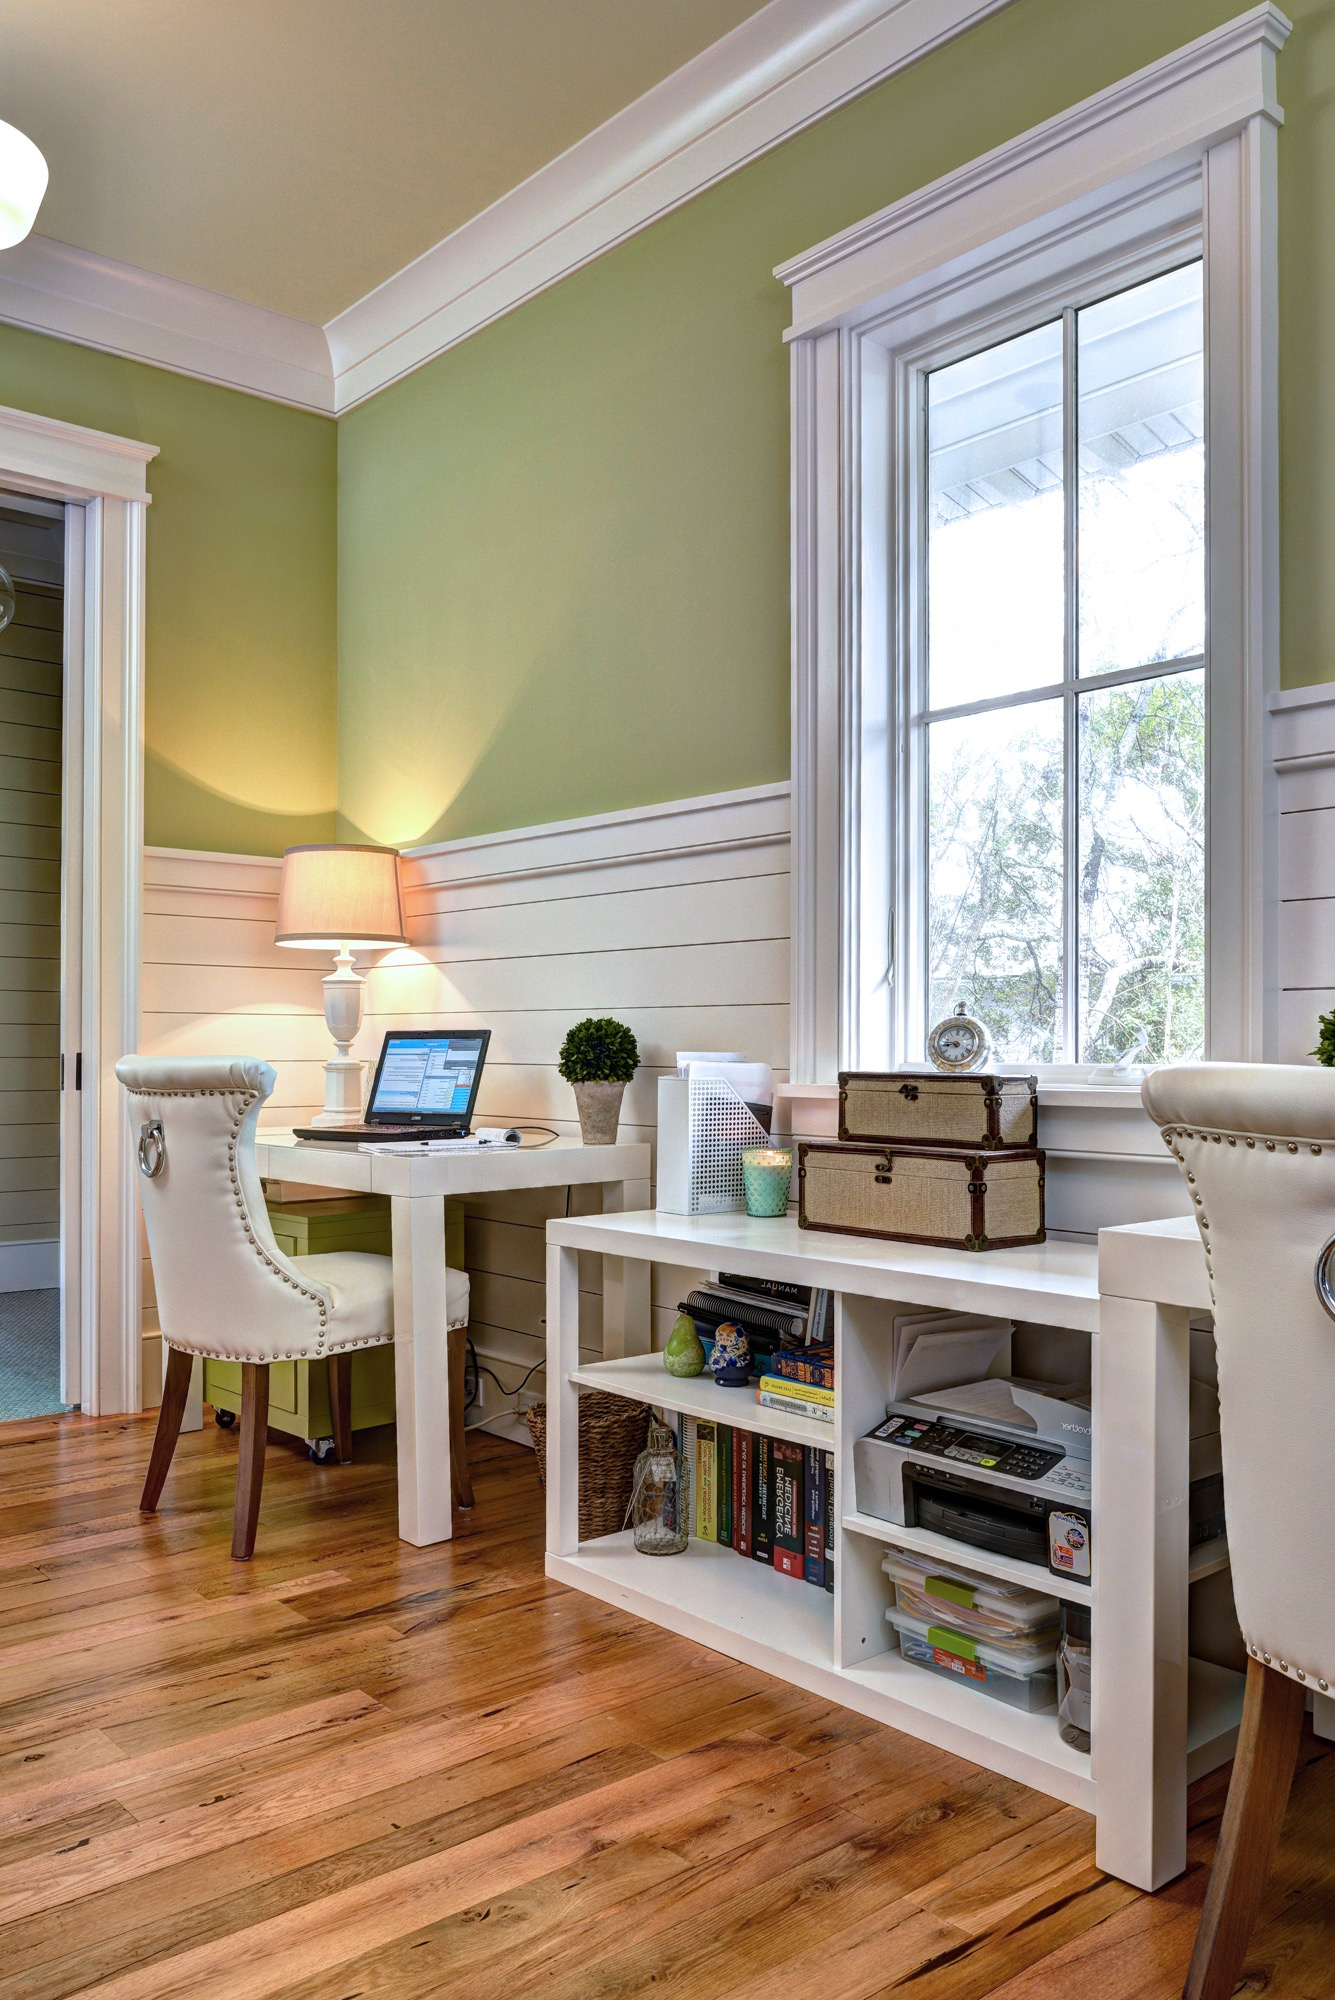 Home Office With Green Walls And Costal Style Wainscoting (View 21 of 50)